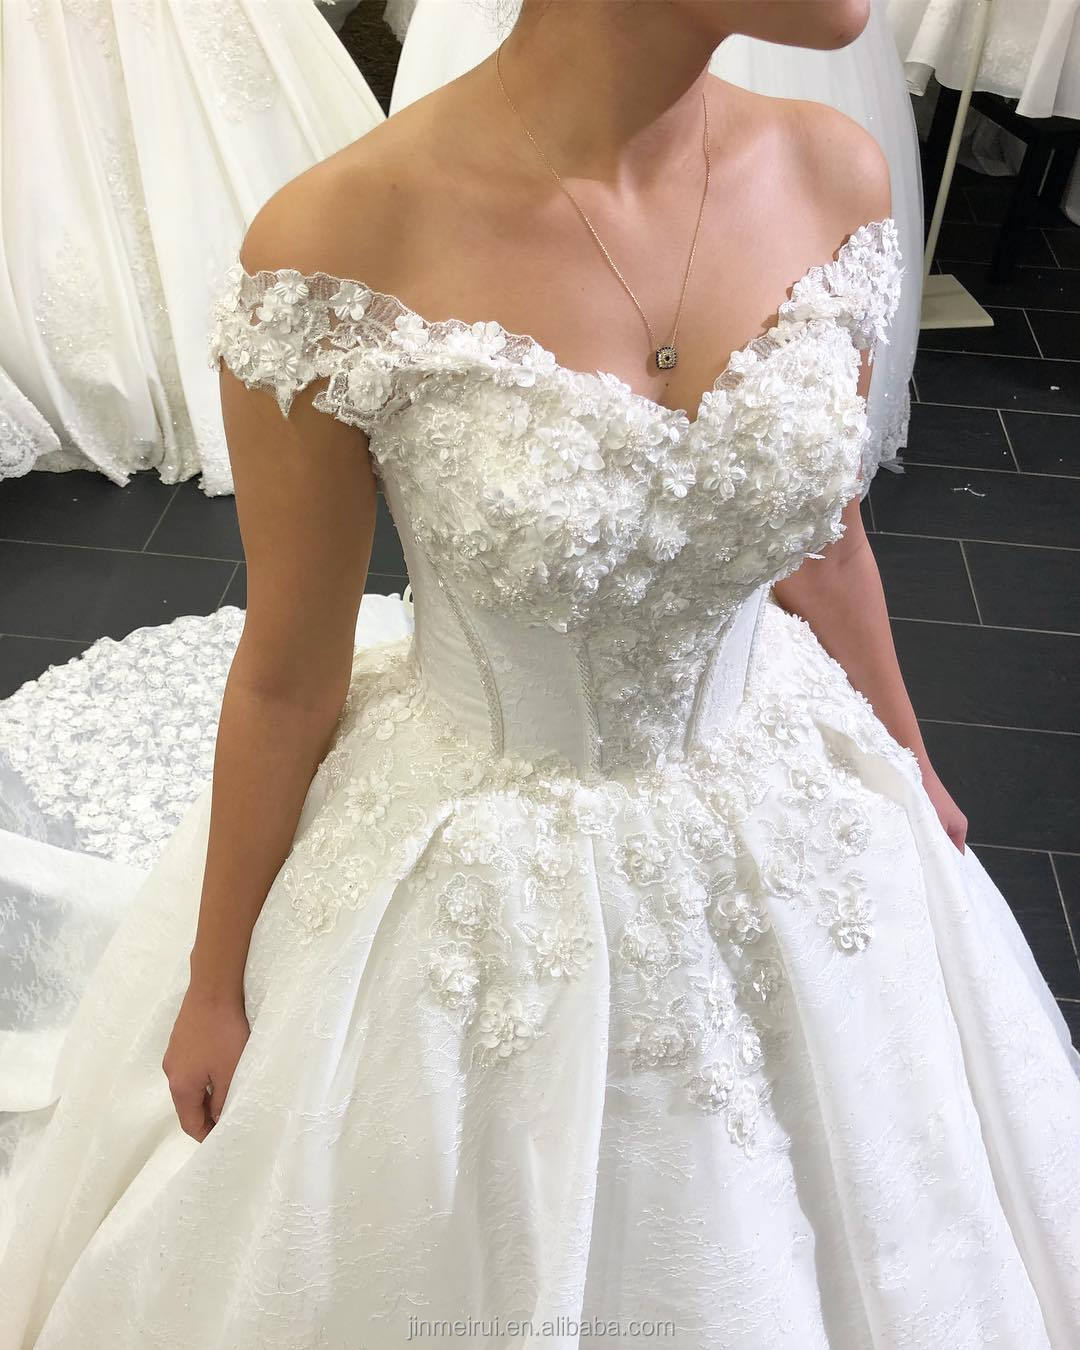 Luxury Lifestyle Cinderella Wedding Gown  Sweetheart Couture Bodice 2 Lace with 3D Flowers Ball Gown Wedding Dresses Vestidos De